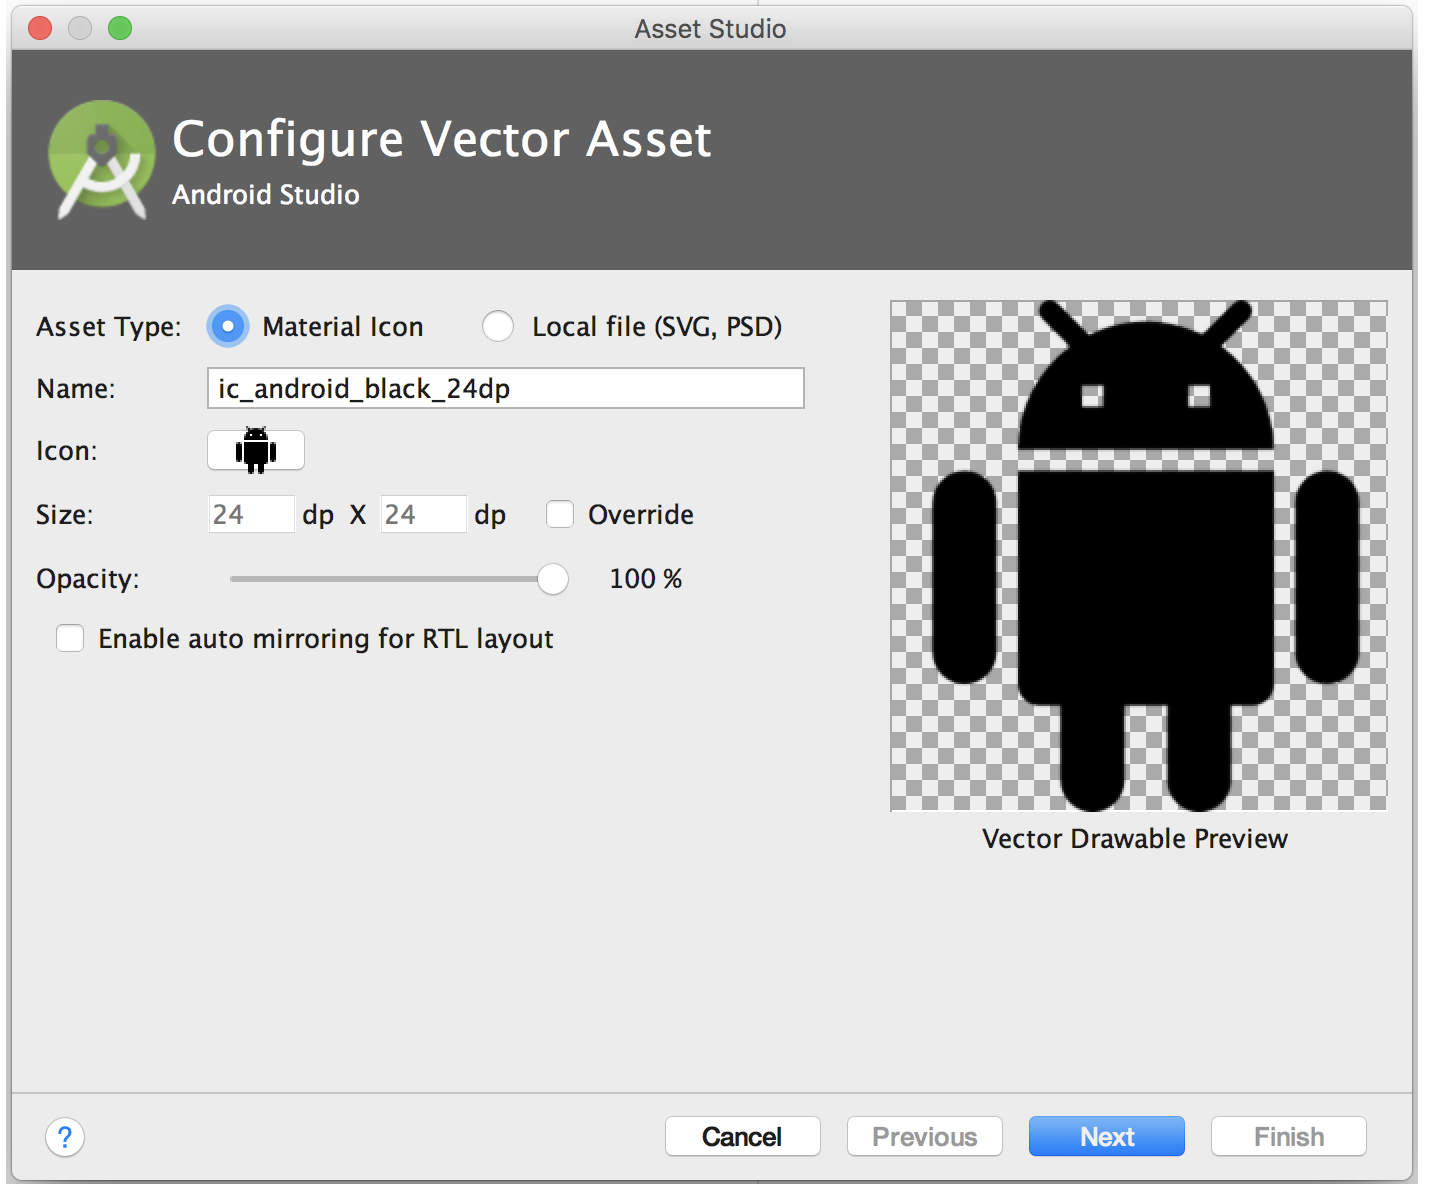 Converting SVG, PSD to XML(Vector Drawable) using Android